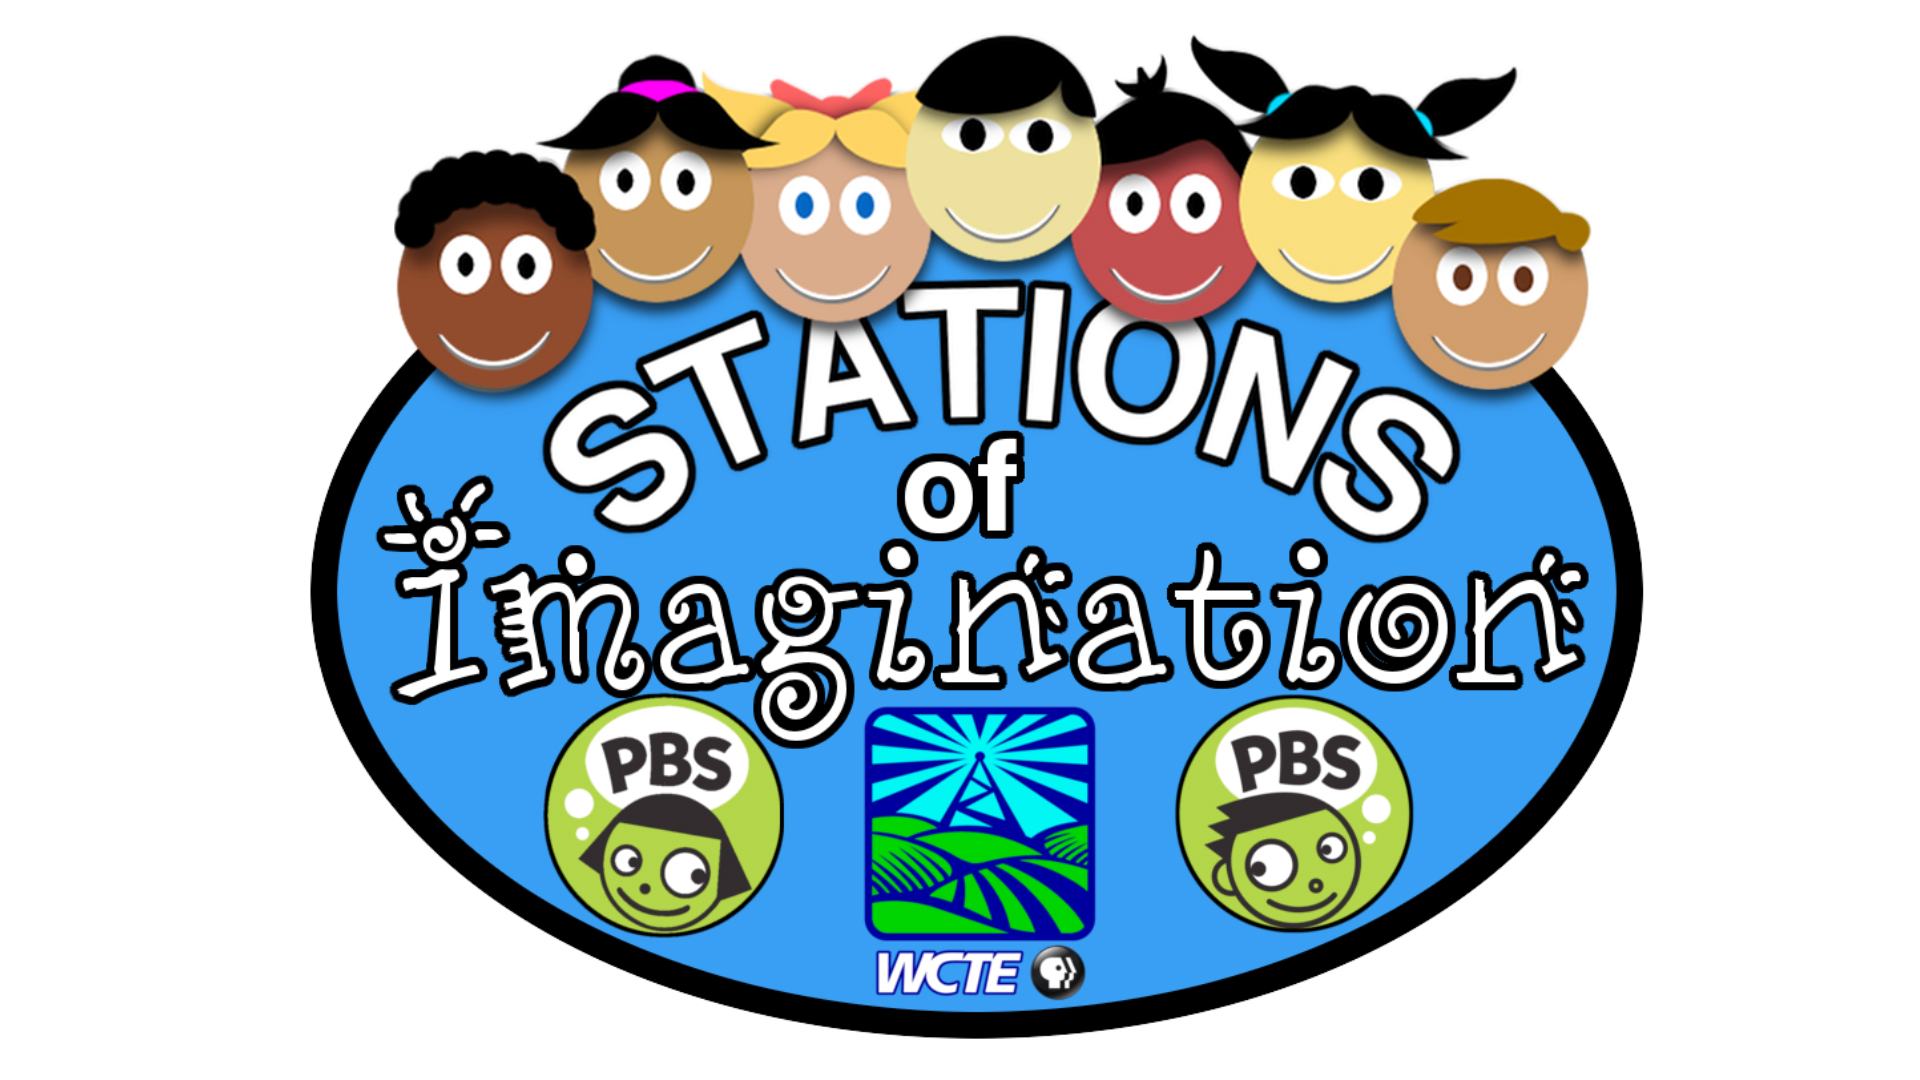 WCTE's Stations of Imagination at Fall FunFest